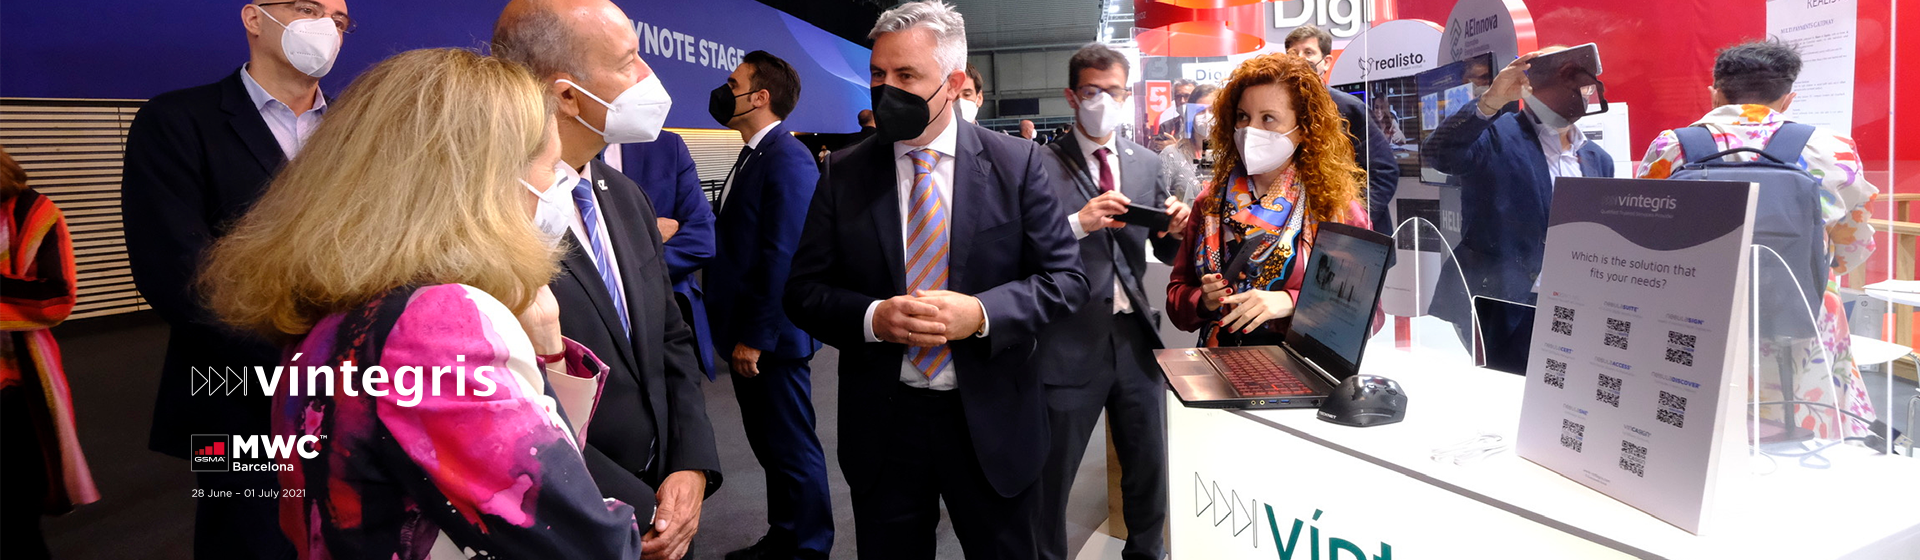 Víntegris introduces at MWC 2021 its solutions to guarantee the evidential validity of digital identity processes